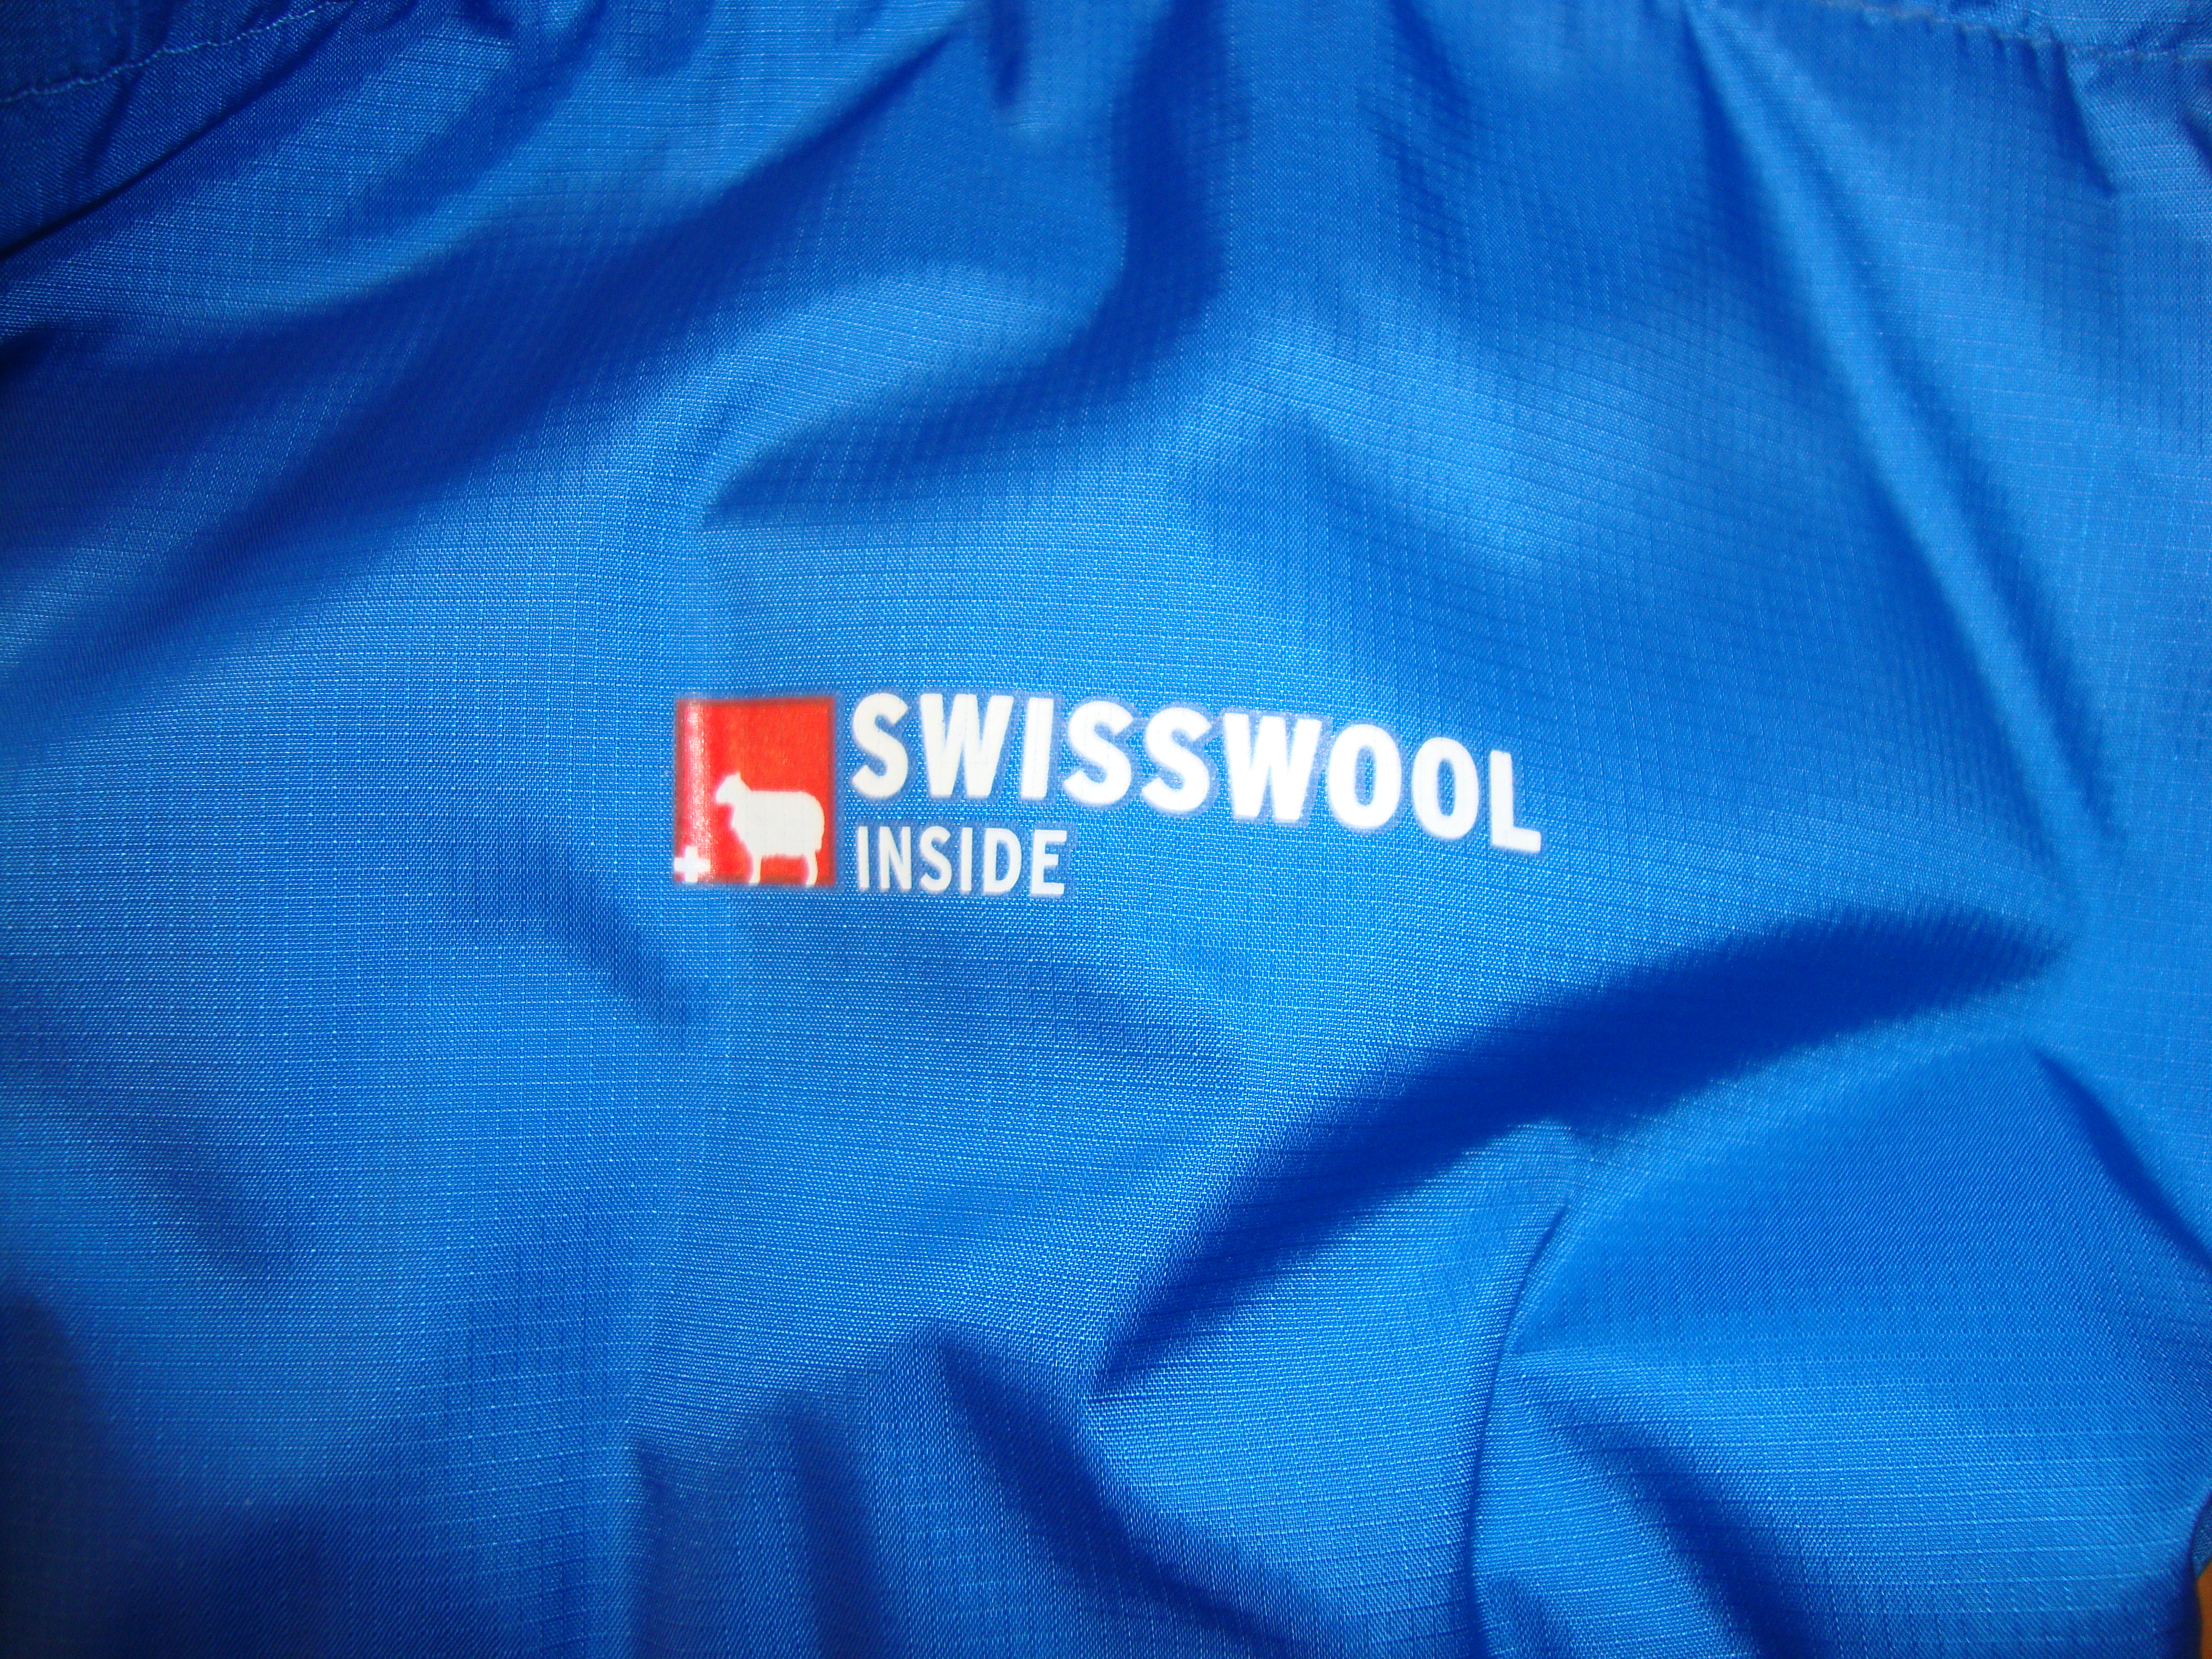 SWISSWOOL INSIDE